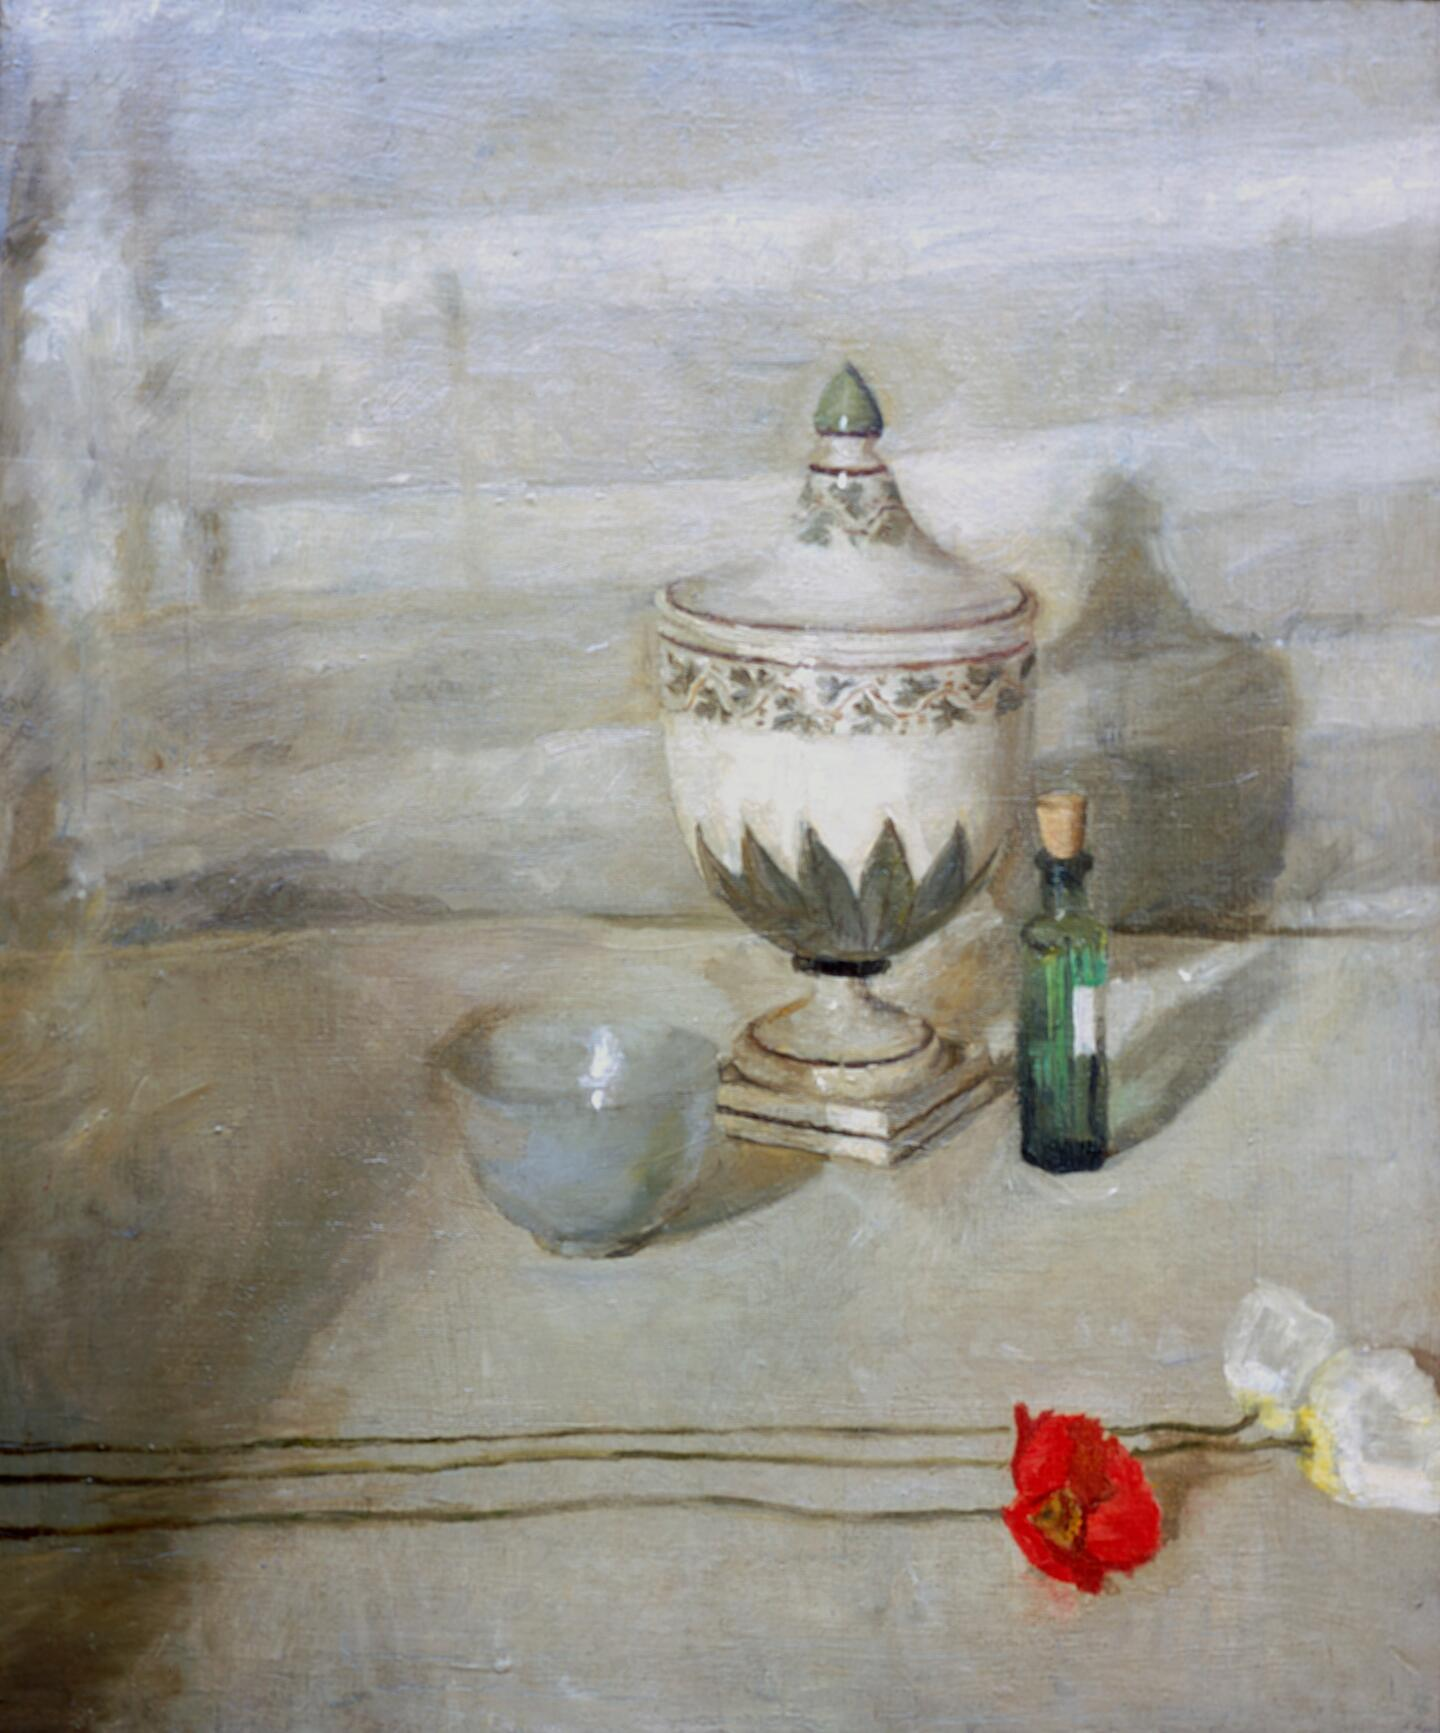 Still life image of a flower and poppies